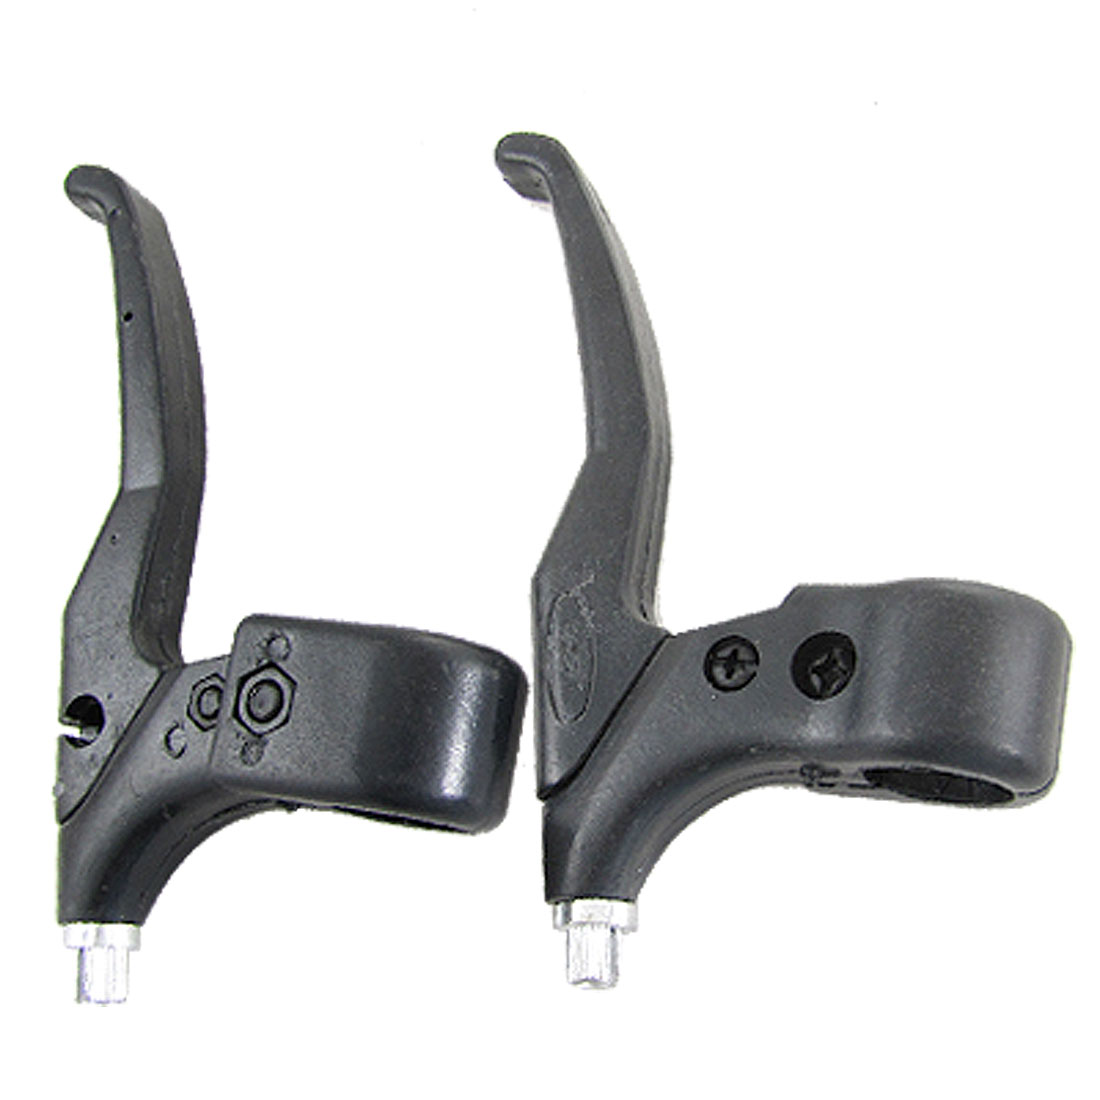 Replacement Bike Cycling Front Rear Brake Levers Black